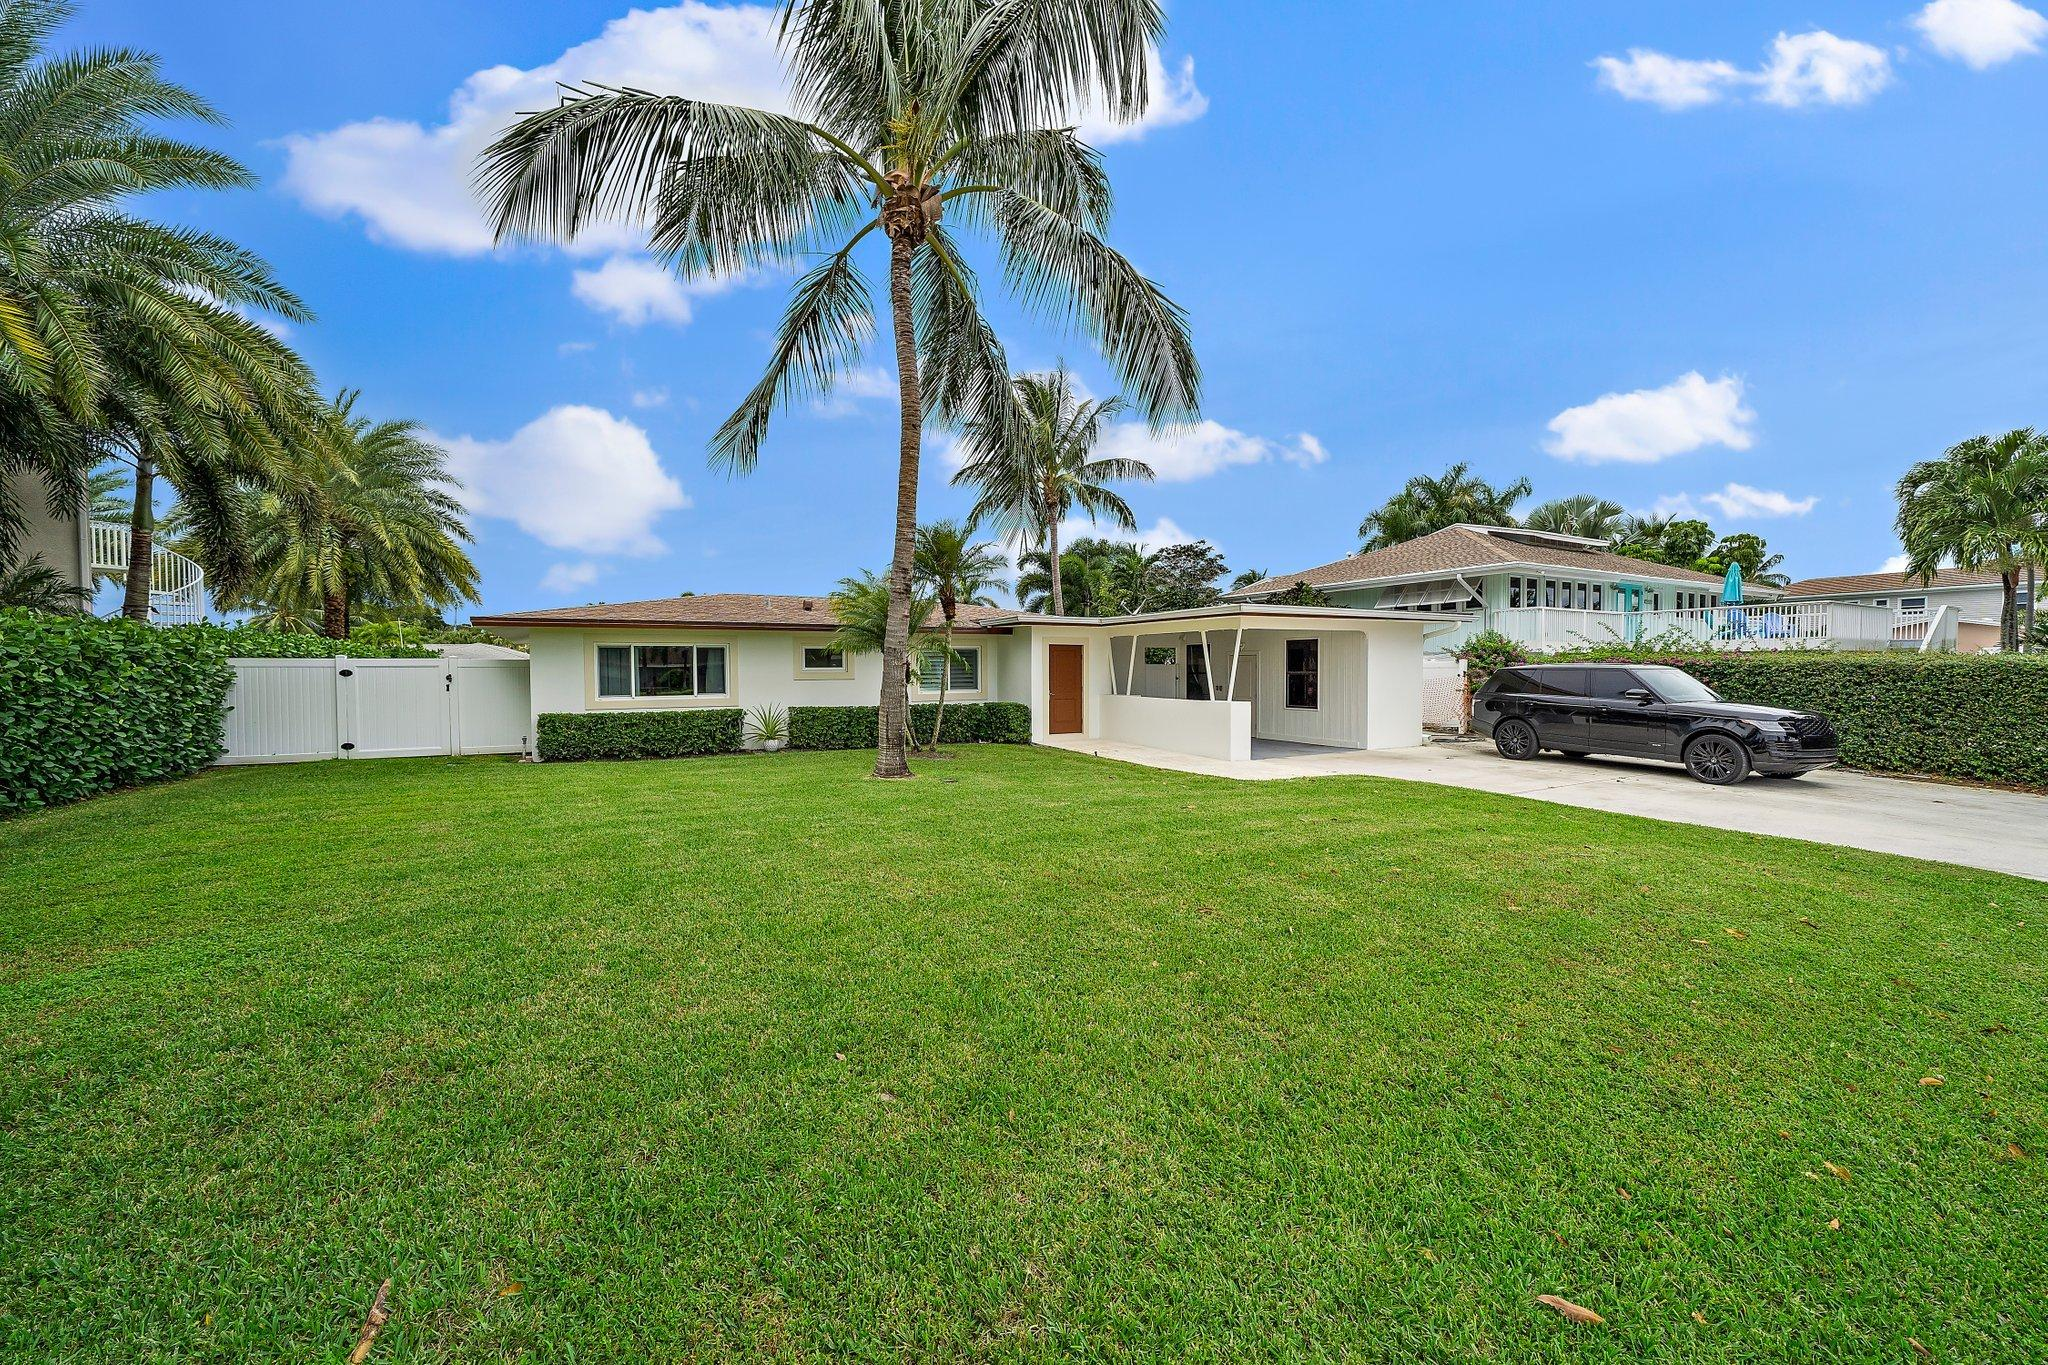 Home for sale in Pirates Cove Palm Beach Gardens Florida